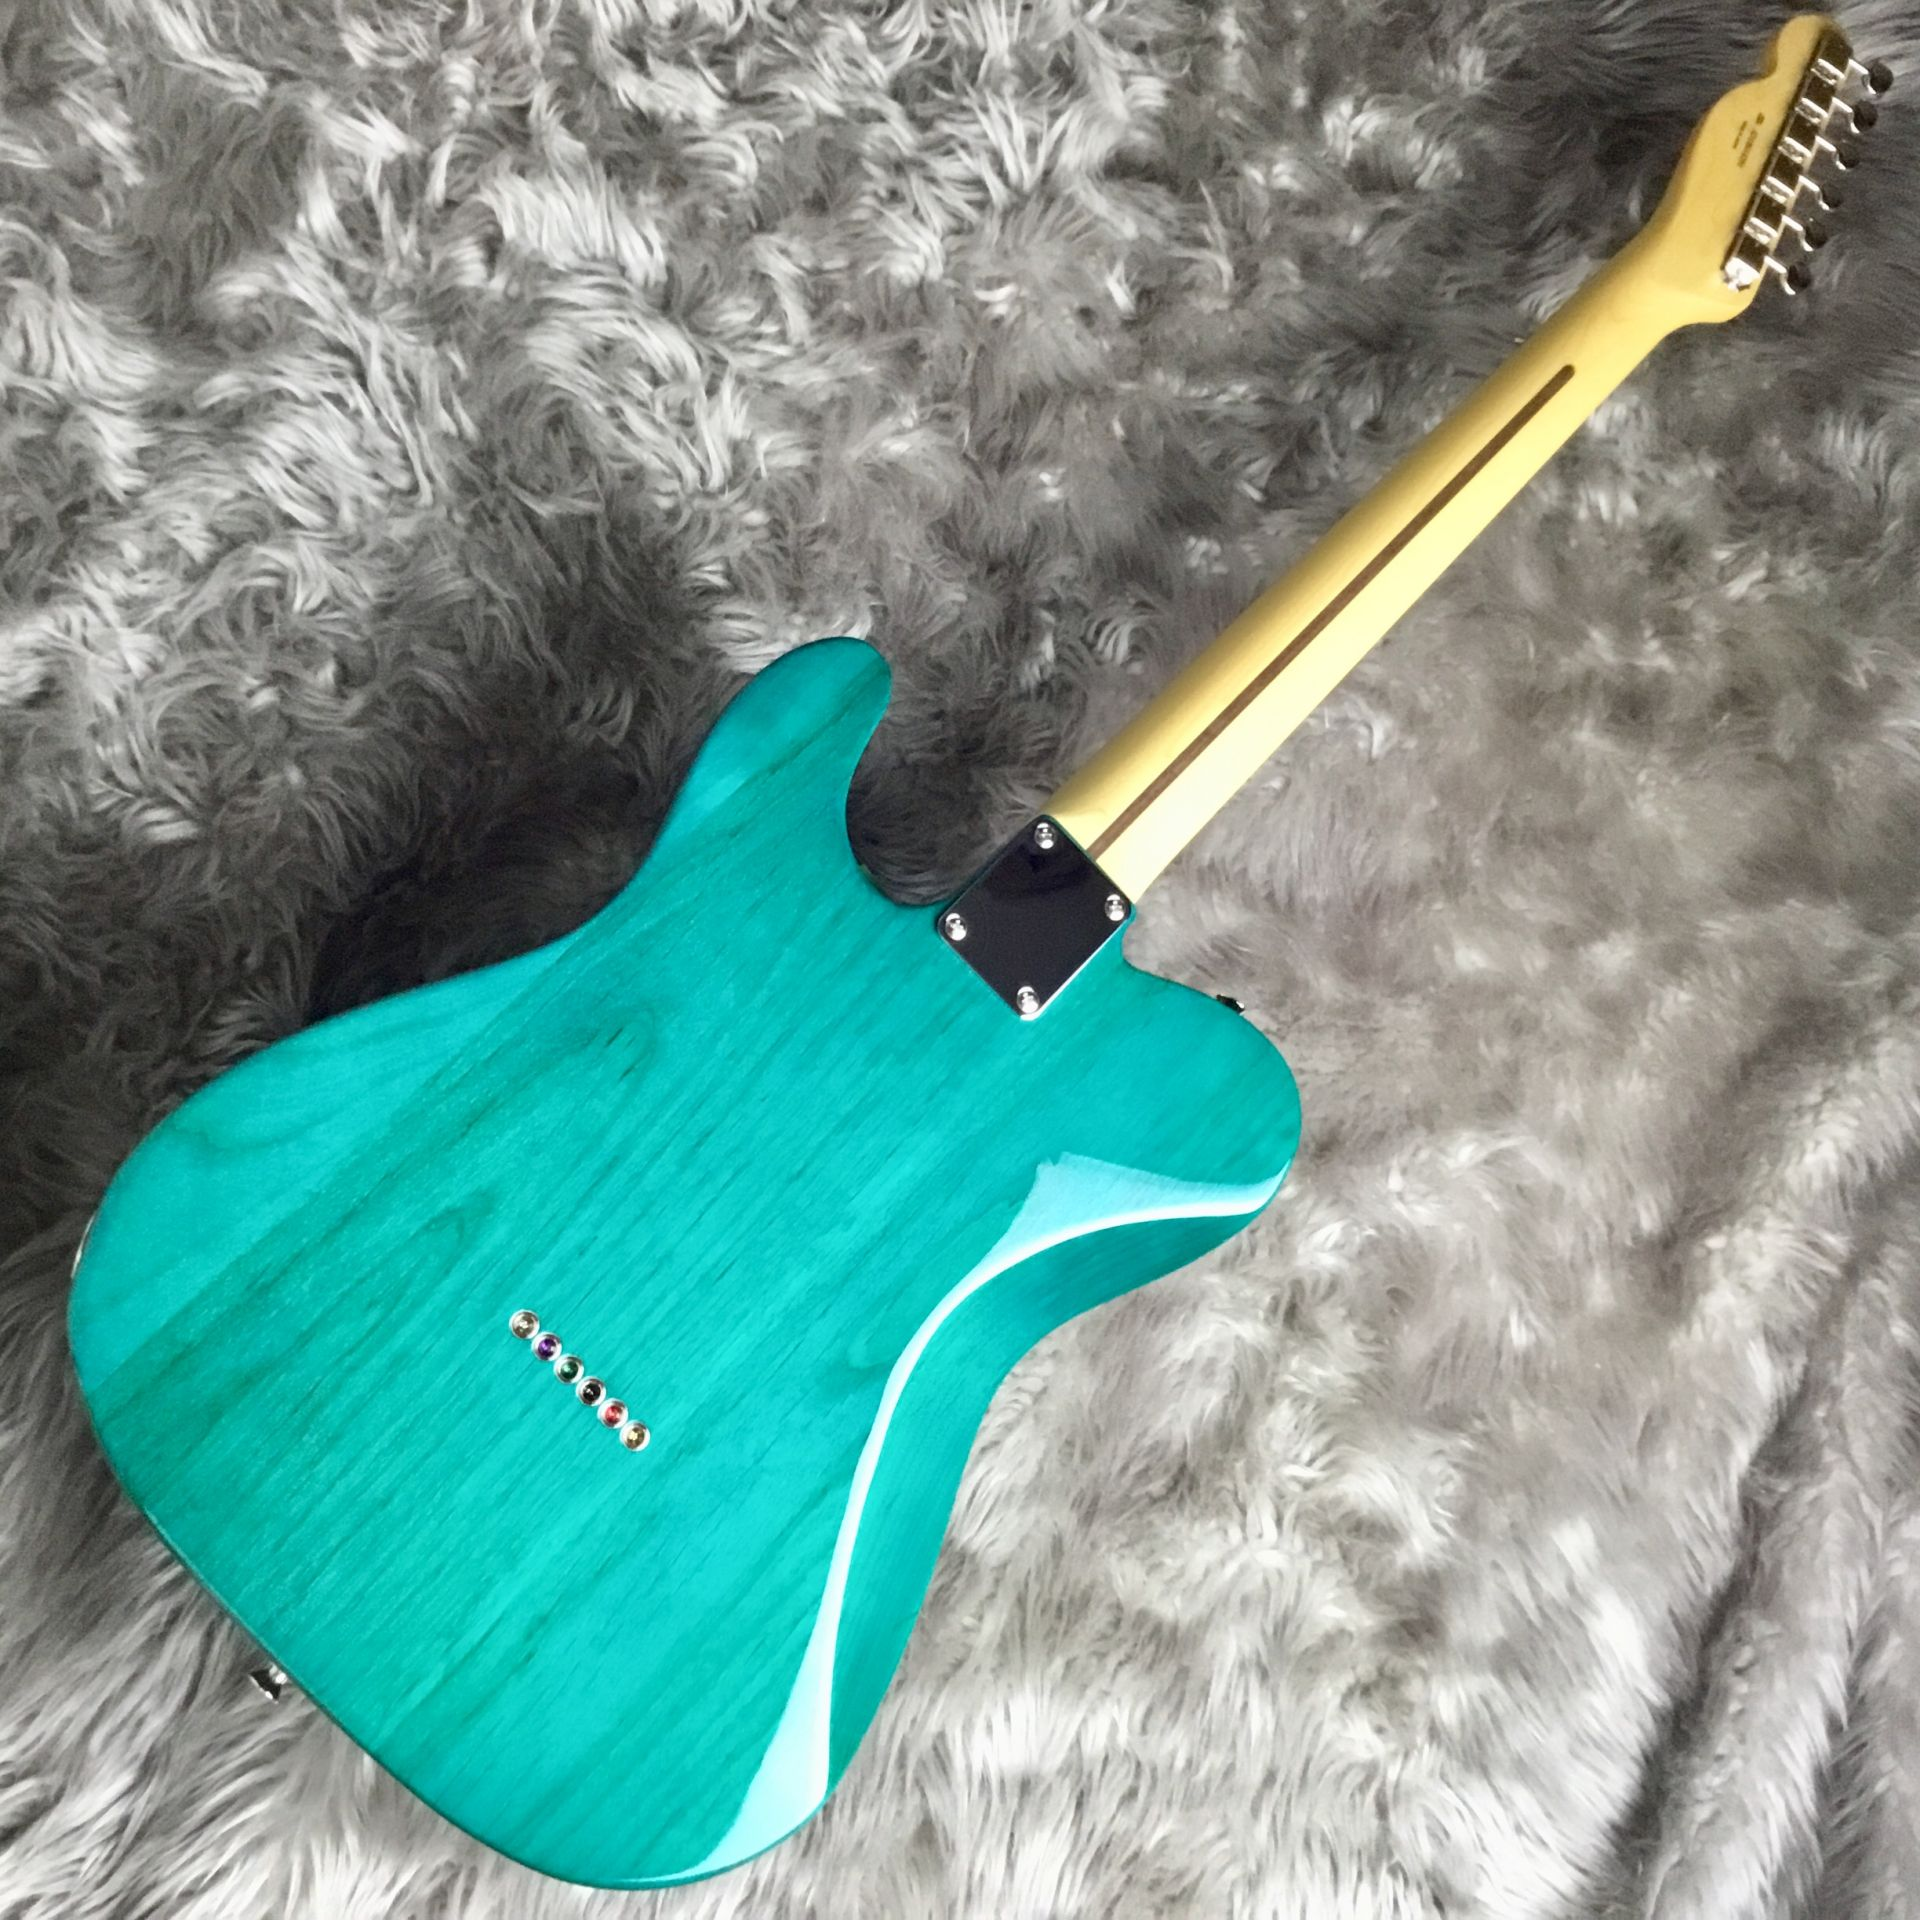 Hybrid 60s Telecaster Quilt Top/Transparent Greenのヘッド画像